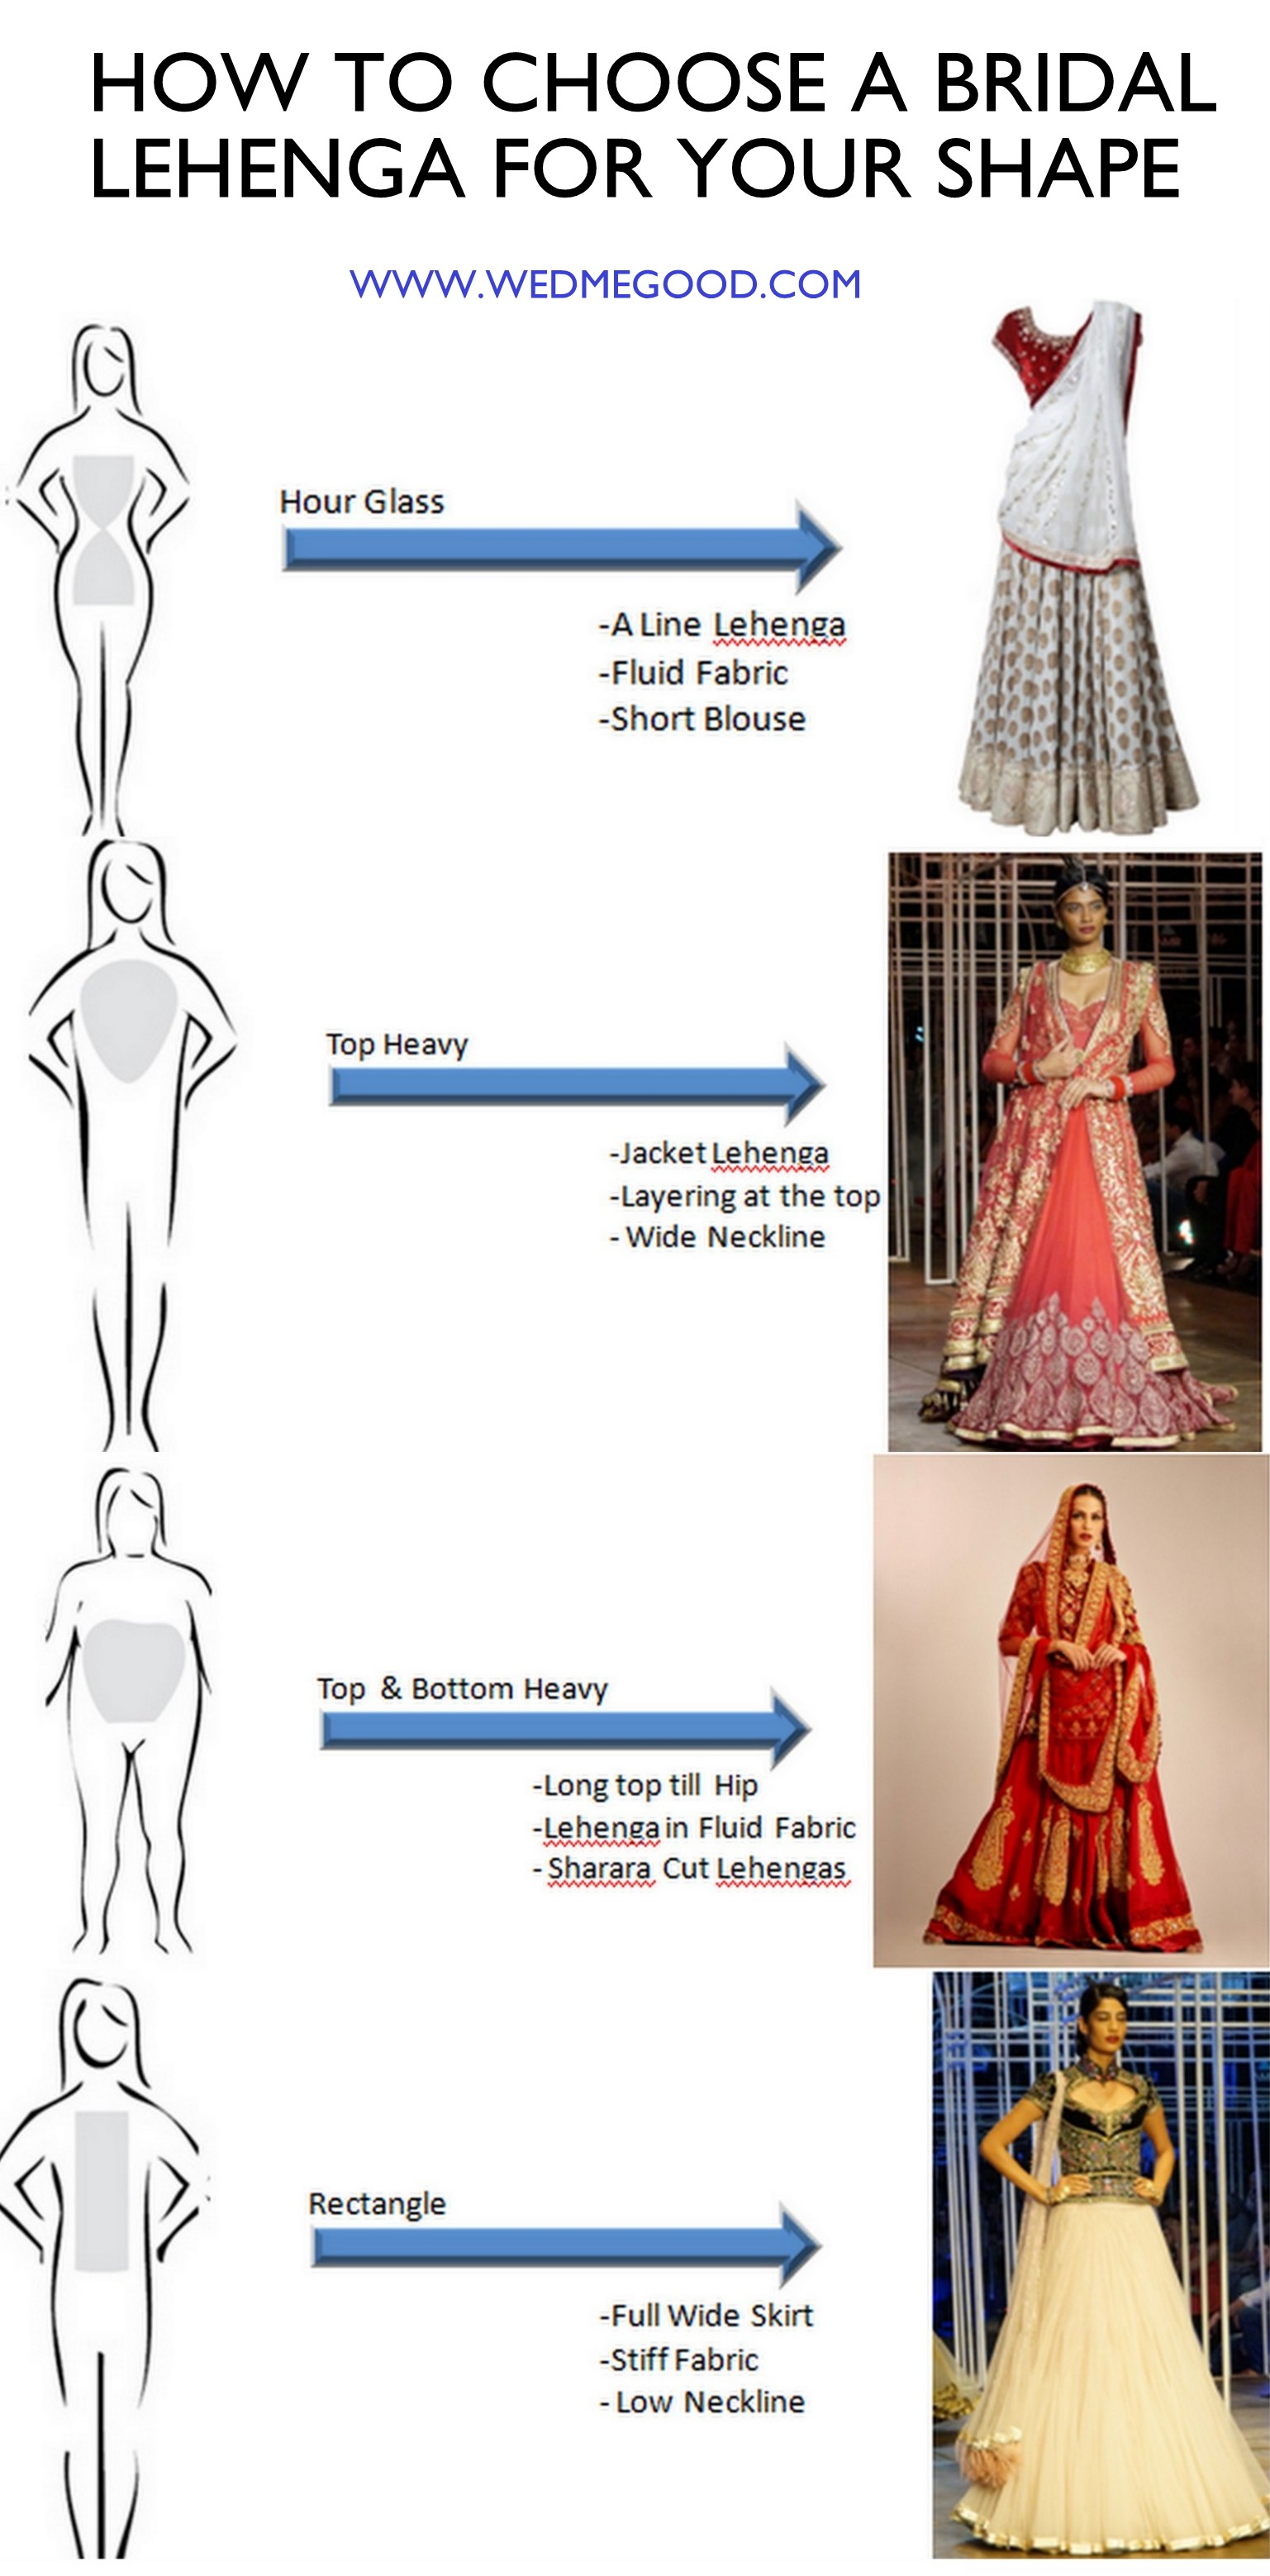 How To Choosing The Right Wedding Lehenga For Your Body